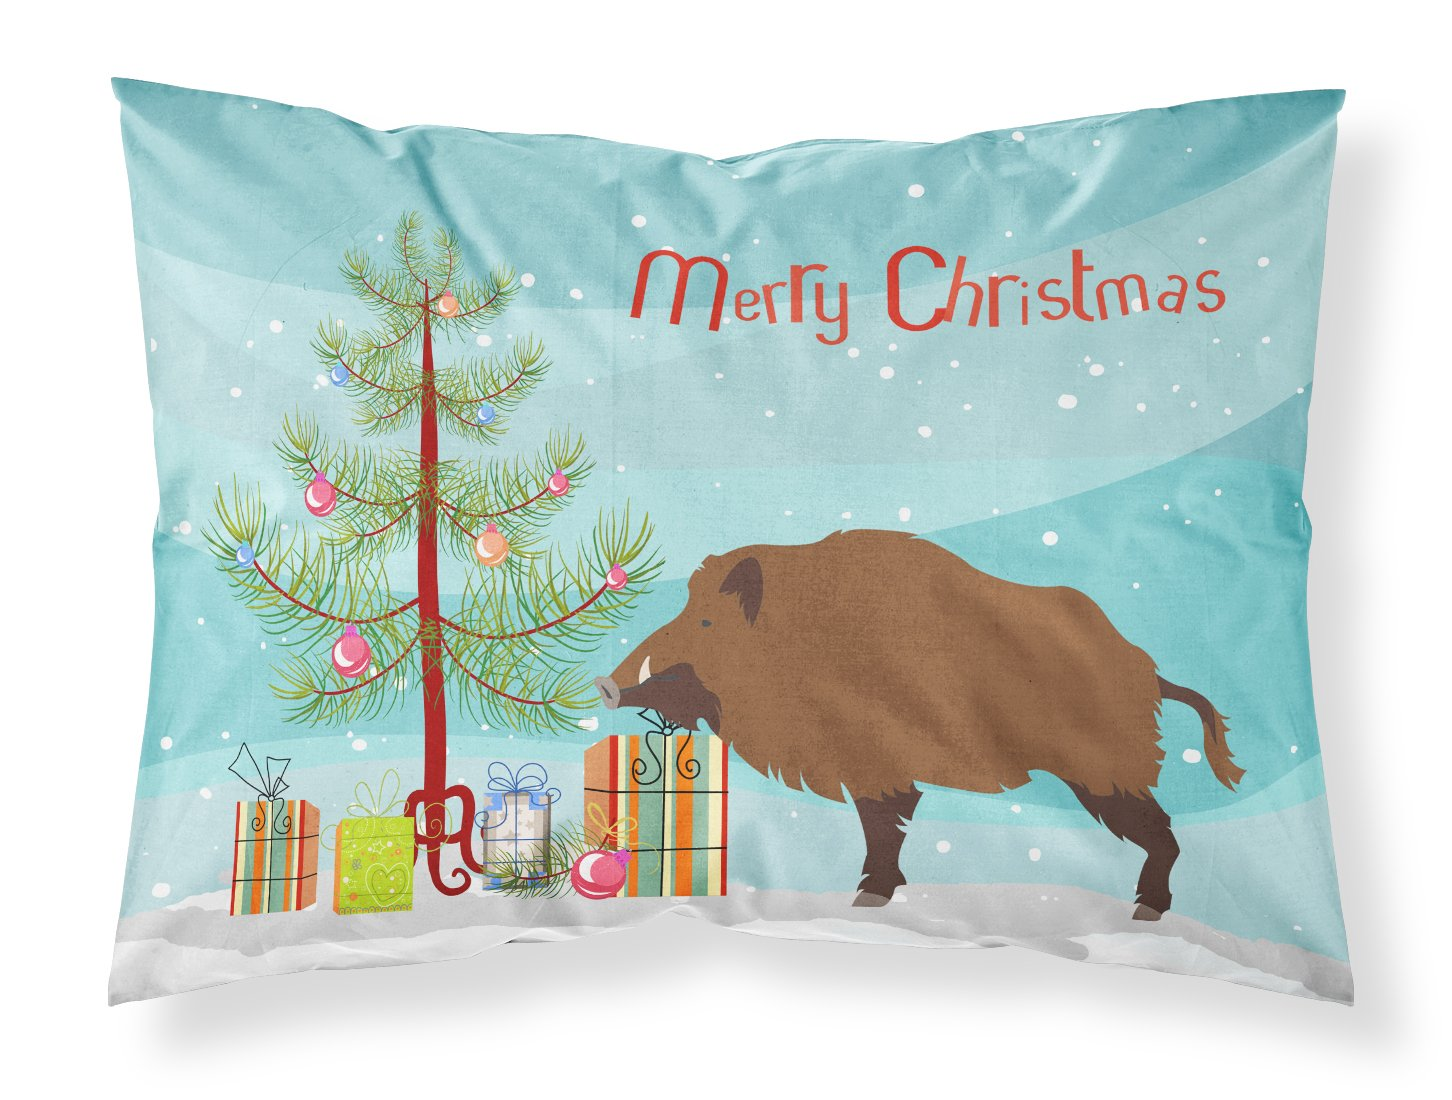 Wild Boar Pig Christmas Fabric Standard Pillowcase BB9303PILLOWCASE by Caroline's Treasures